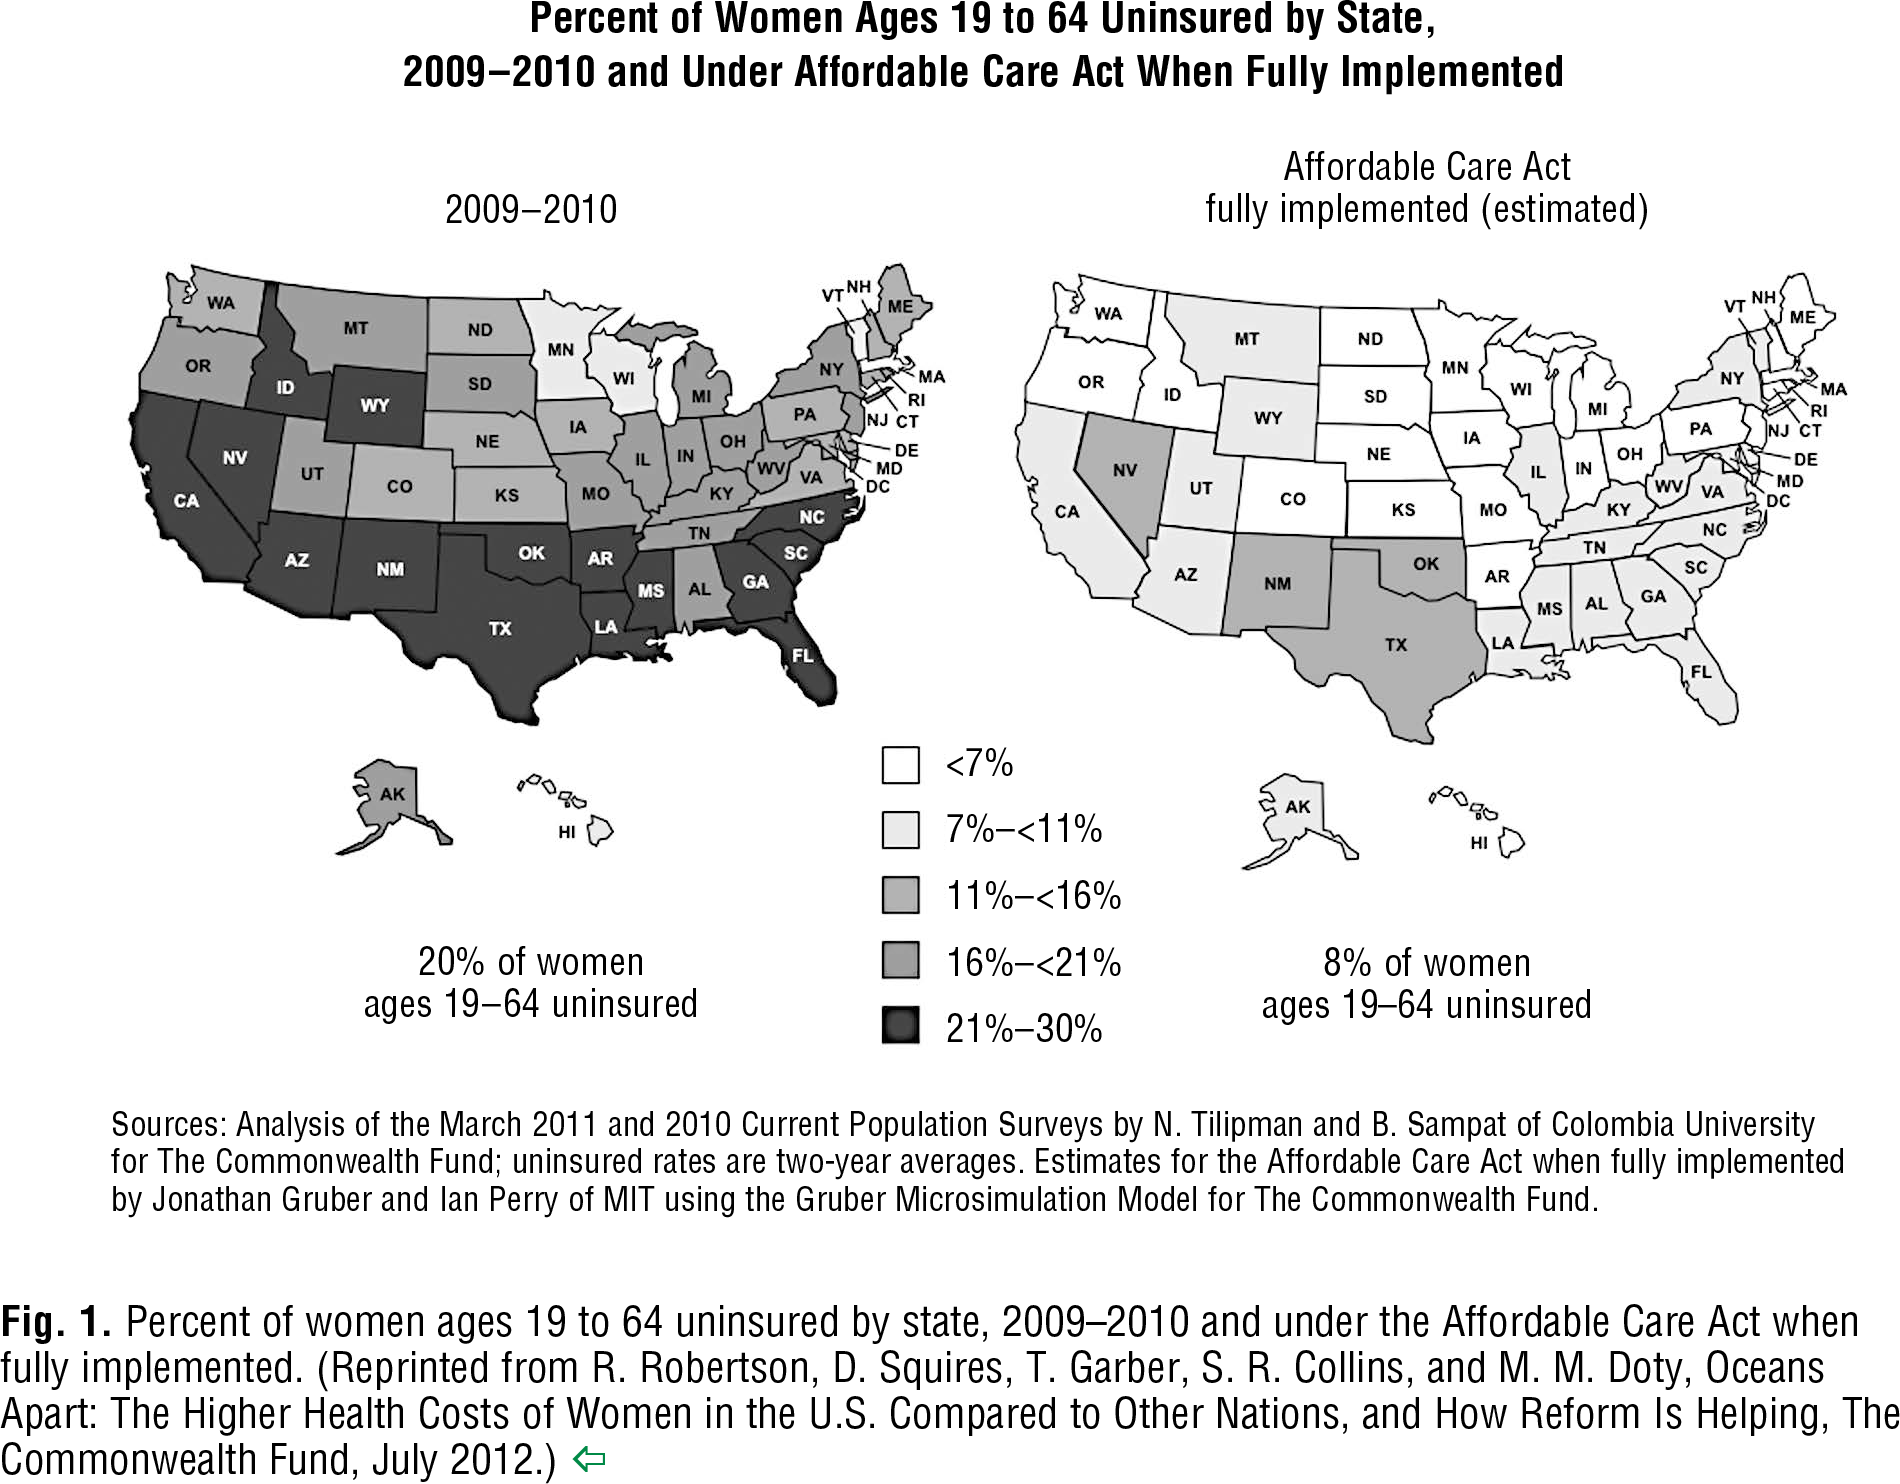 Fig. 1 Percent of women ages 19 to 64 uninsured by state, 2009–2010 and under the Affordable Care Act when fully implemented. (Reprinted from R. Robertson, D. Squires, T. Garber, S. R. Collins, and M. M. Doty, Oceans Apart: The Higher Health Costs of Women in the U.S. Compared to Other Nations, and How Reform Is Helping, The Commonwealth Fund, July 2012.)